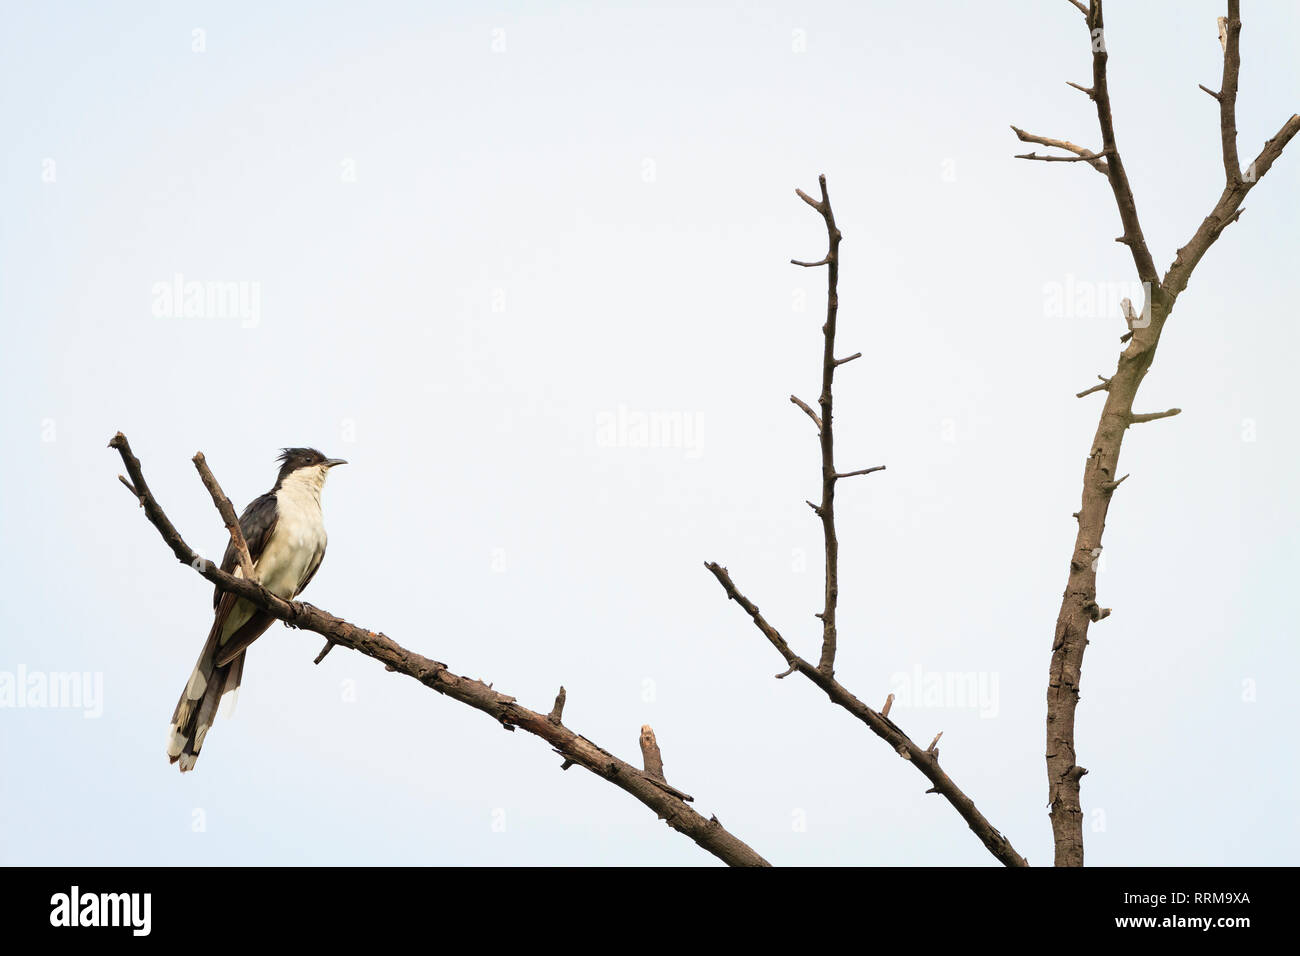 Jacobin Cuckoo (Clamator jacobinus) perched on tree. Keoladeo National Park. Bharatpur. Rajasthan. India. - Stock Image